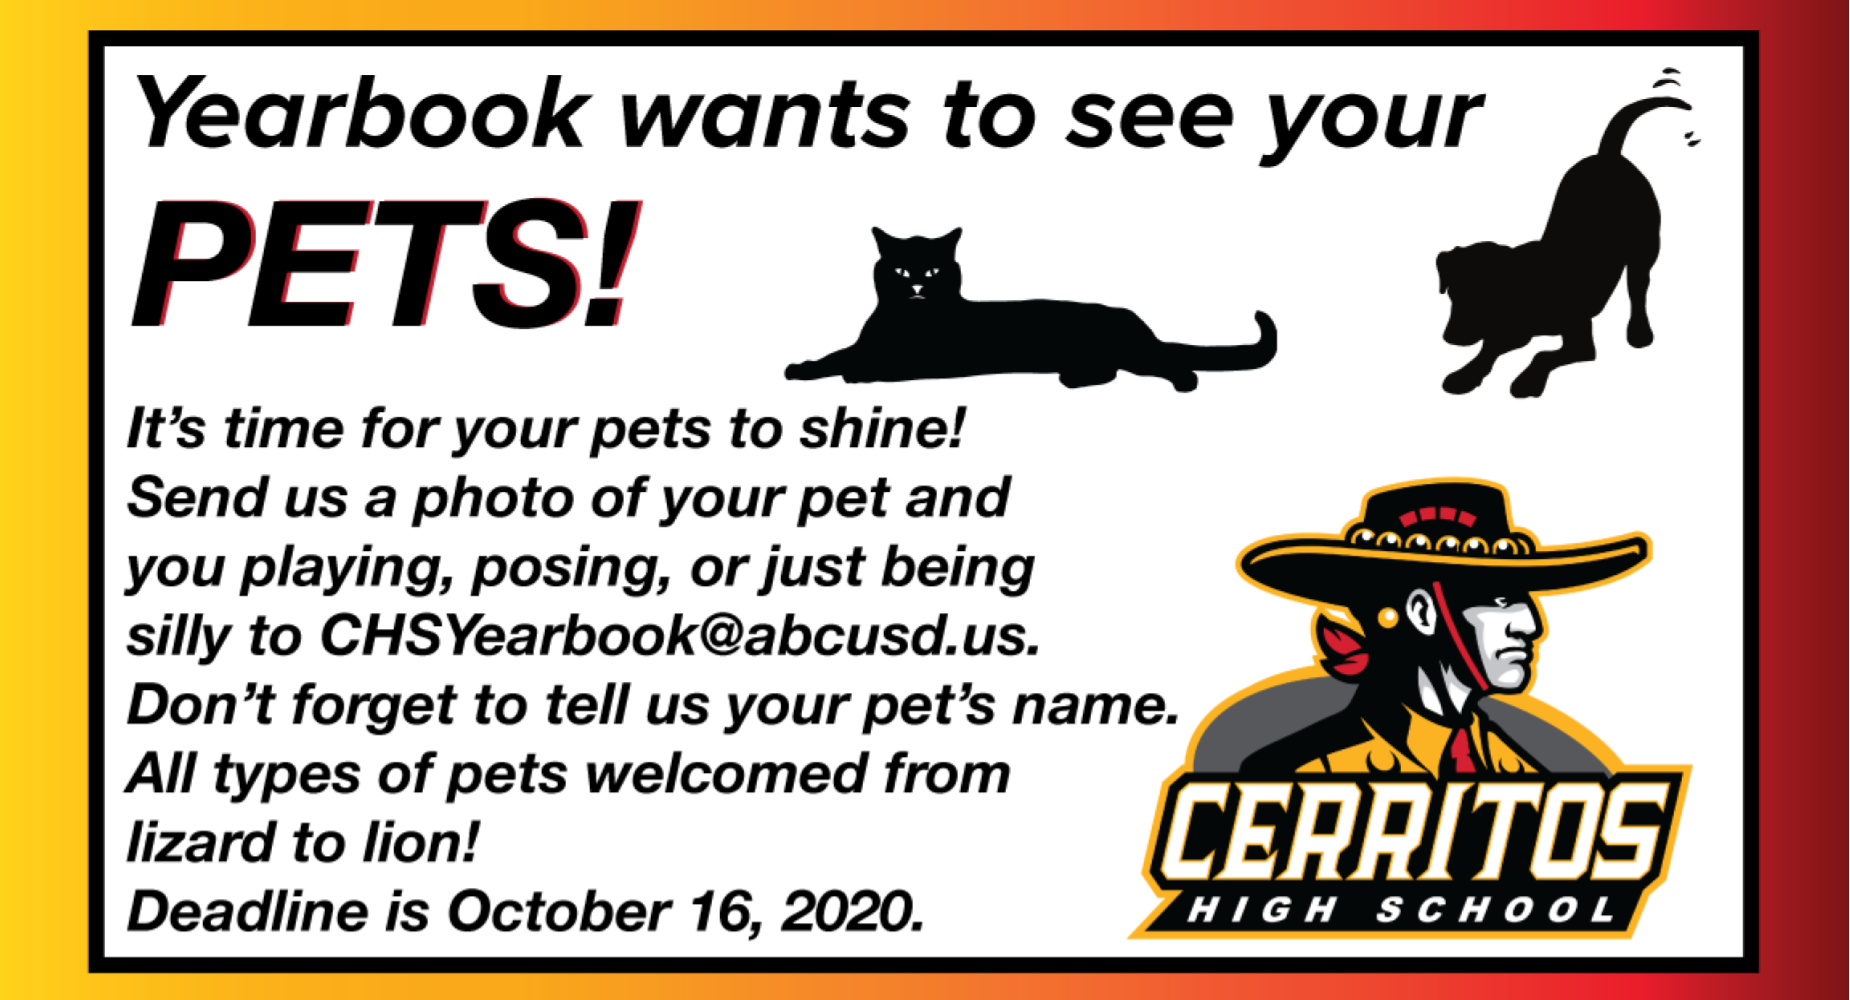 Yearbook wants pictures of your pets!